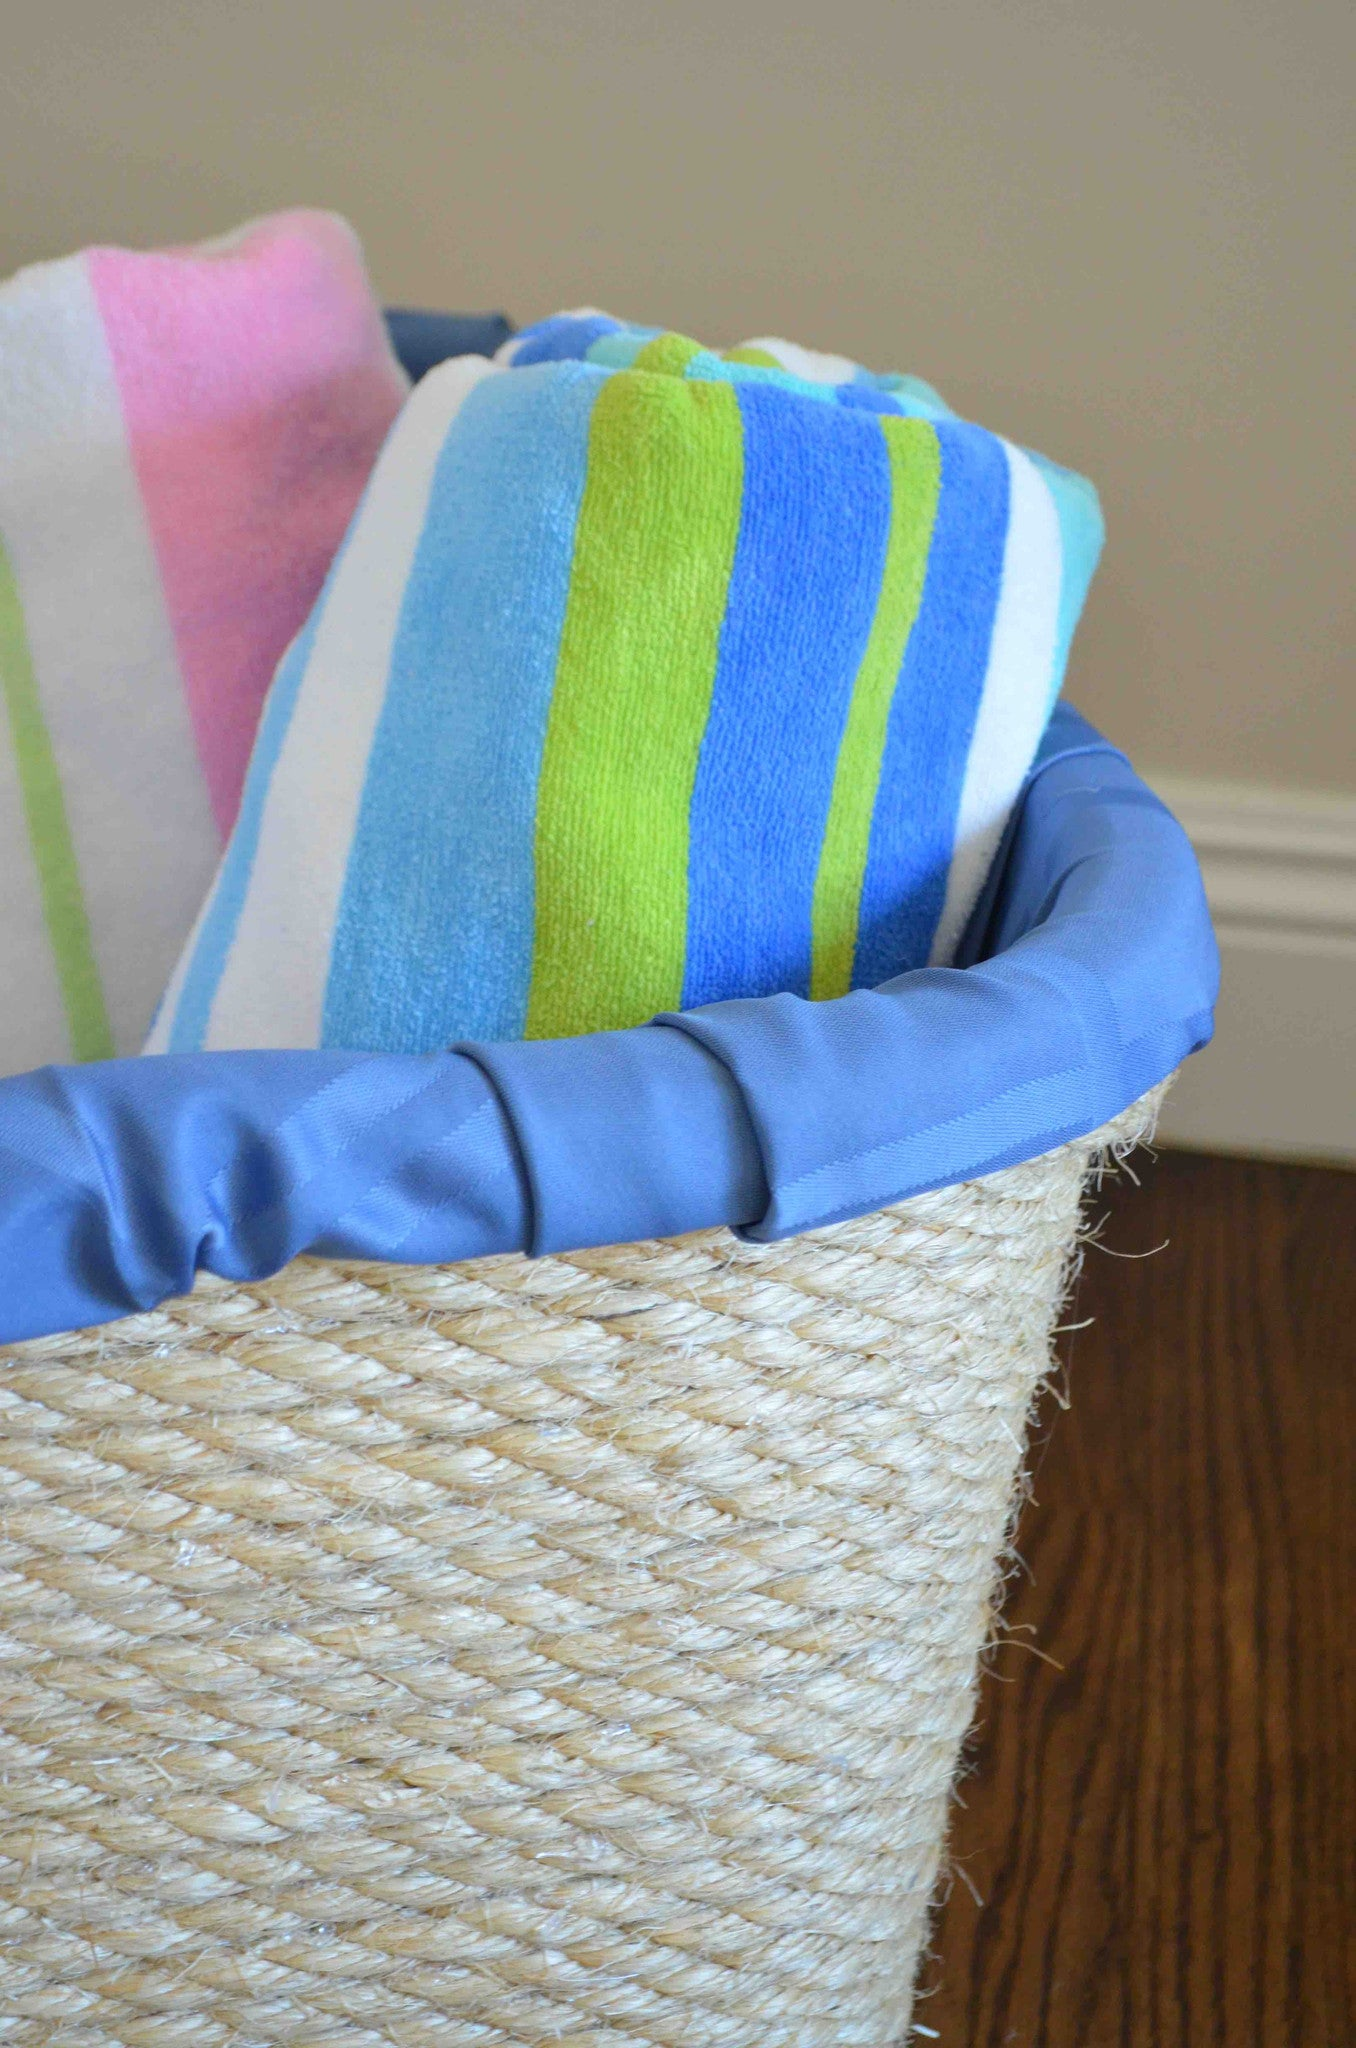 DIY Repurposed Rope Laundry Basket